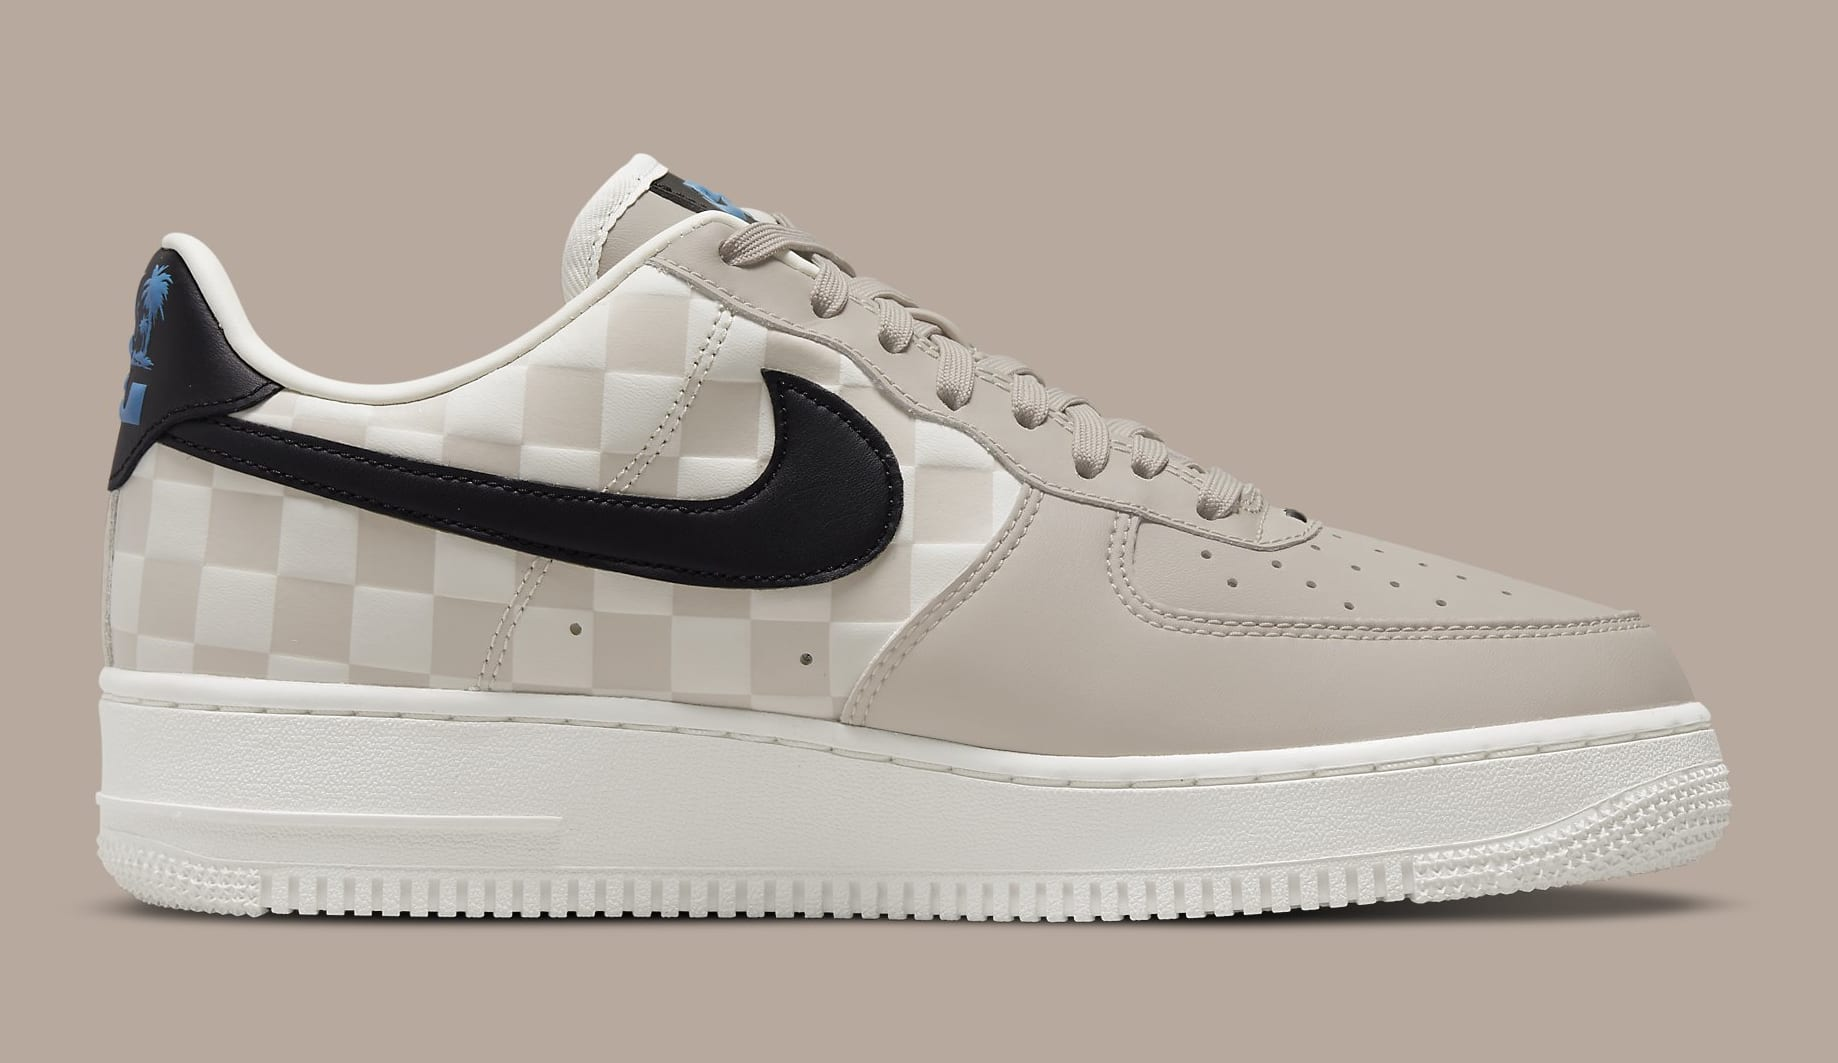 LeBron James x Nike Air Force 1 Low Strive for Greatness Release Date DC8877-200 Medial